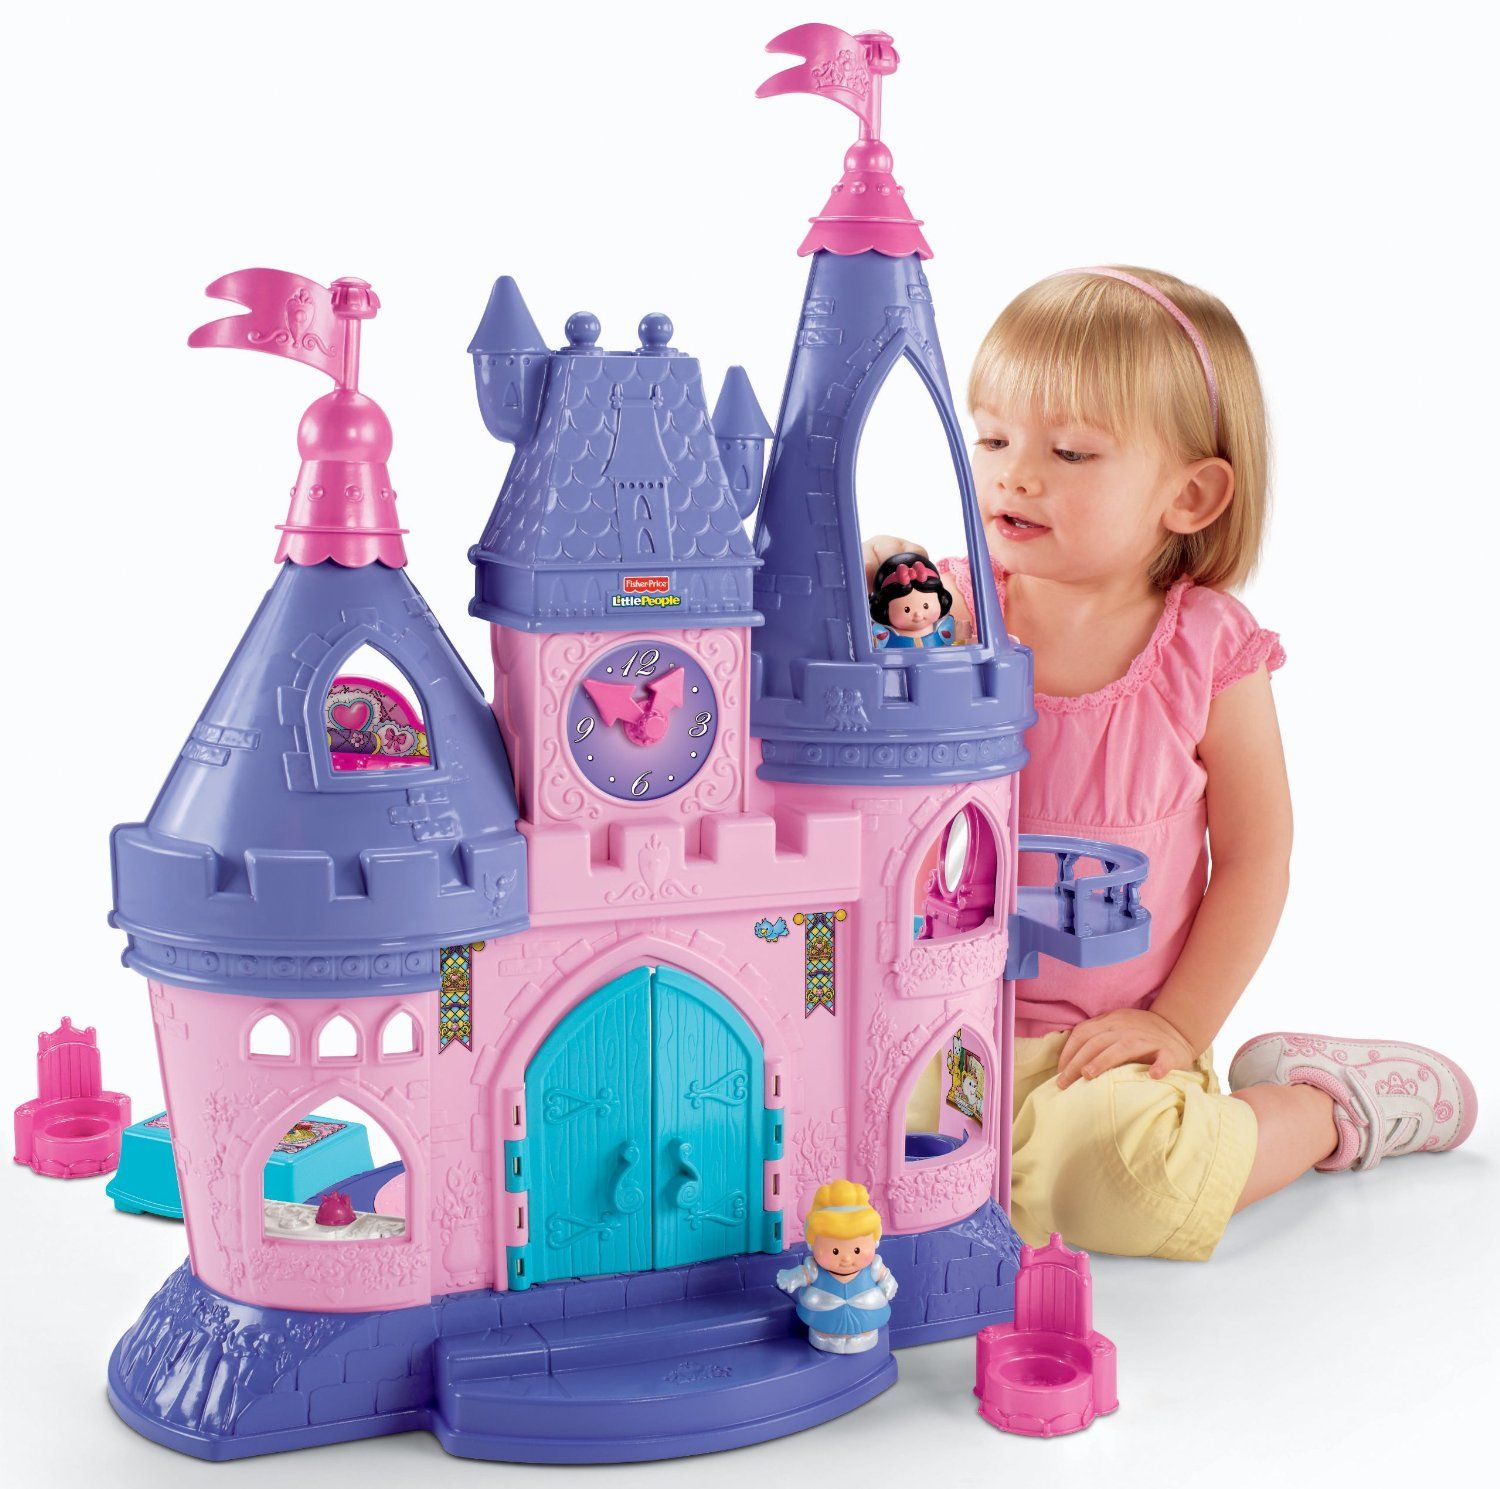 Top Gifts for 2 Year Old Girl Pictures